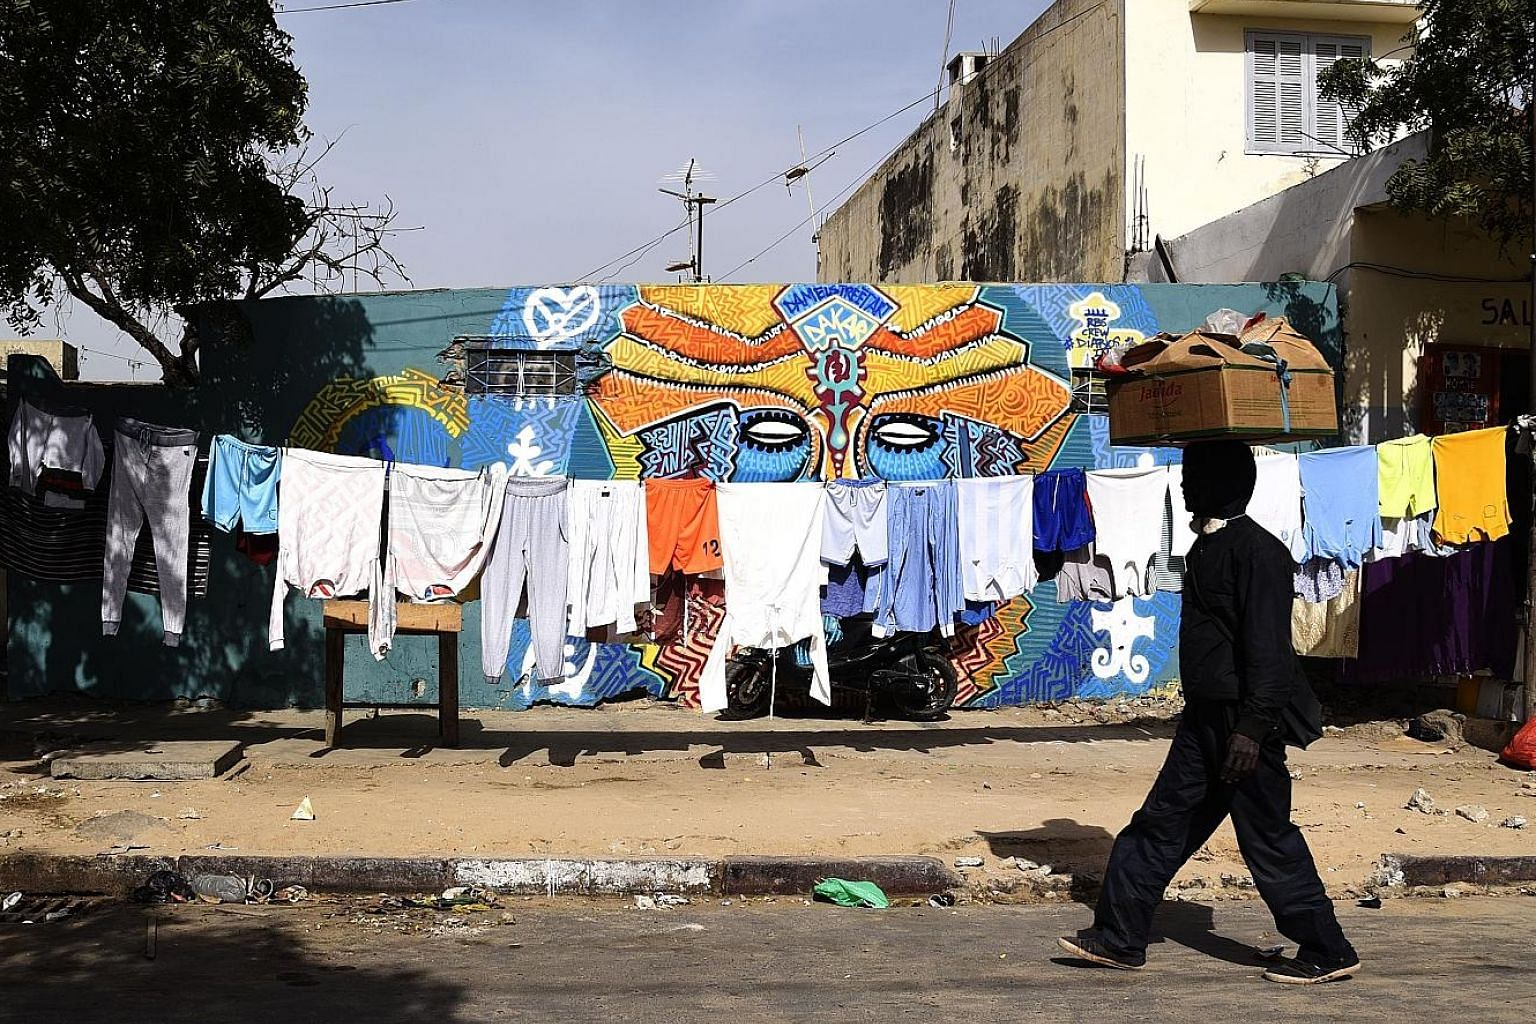 Wet laundry dry in the sun alongside colourful wall murals in Dakar's working-class Medina neighbourhood.